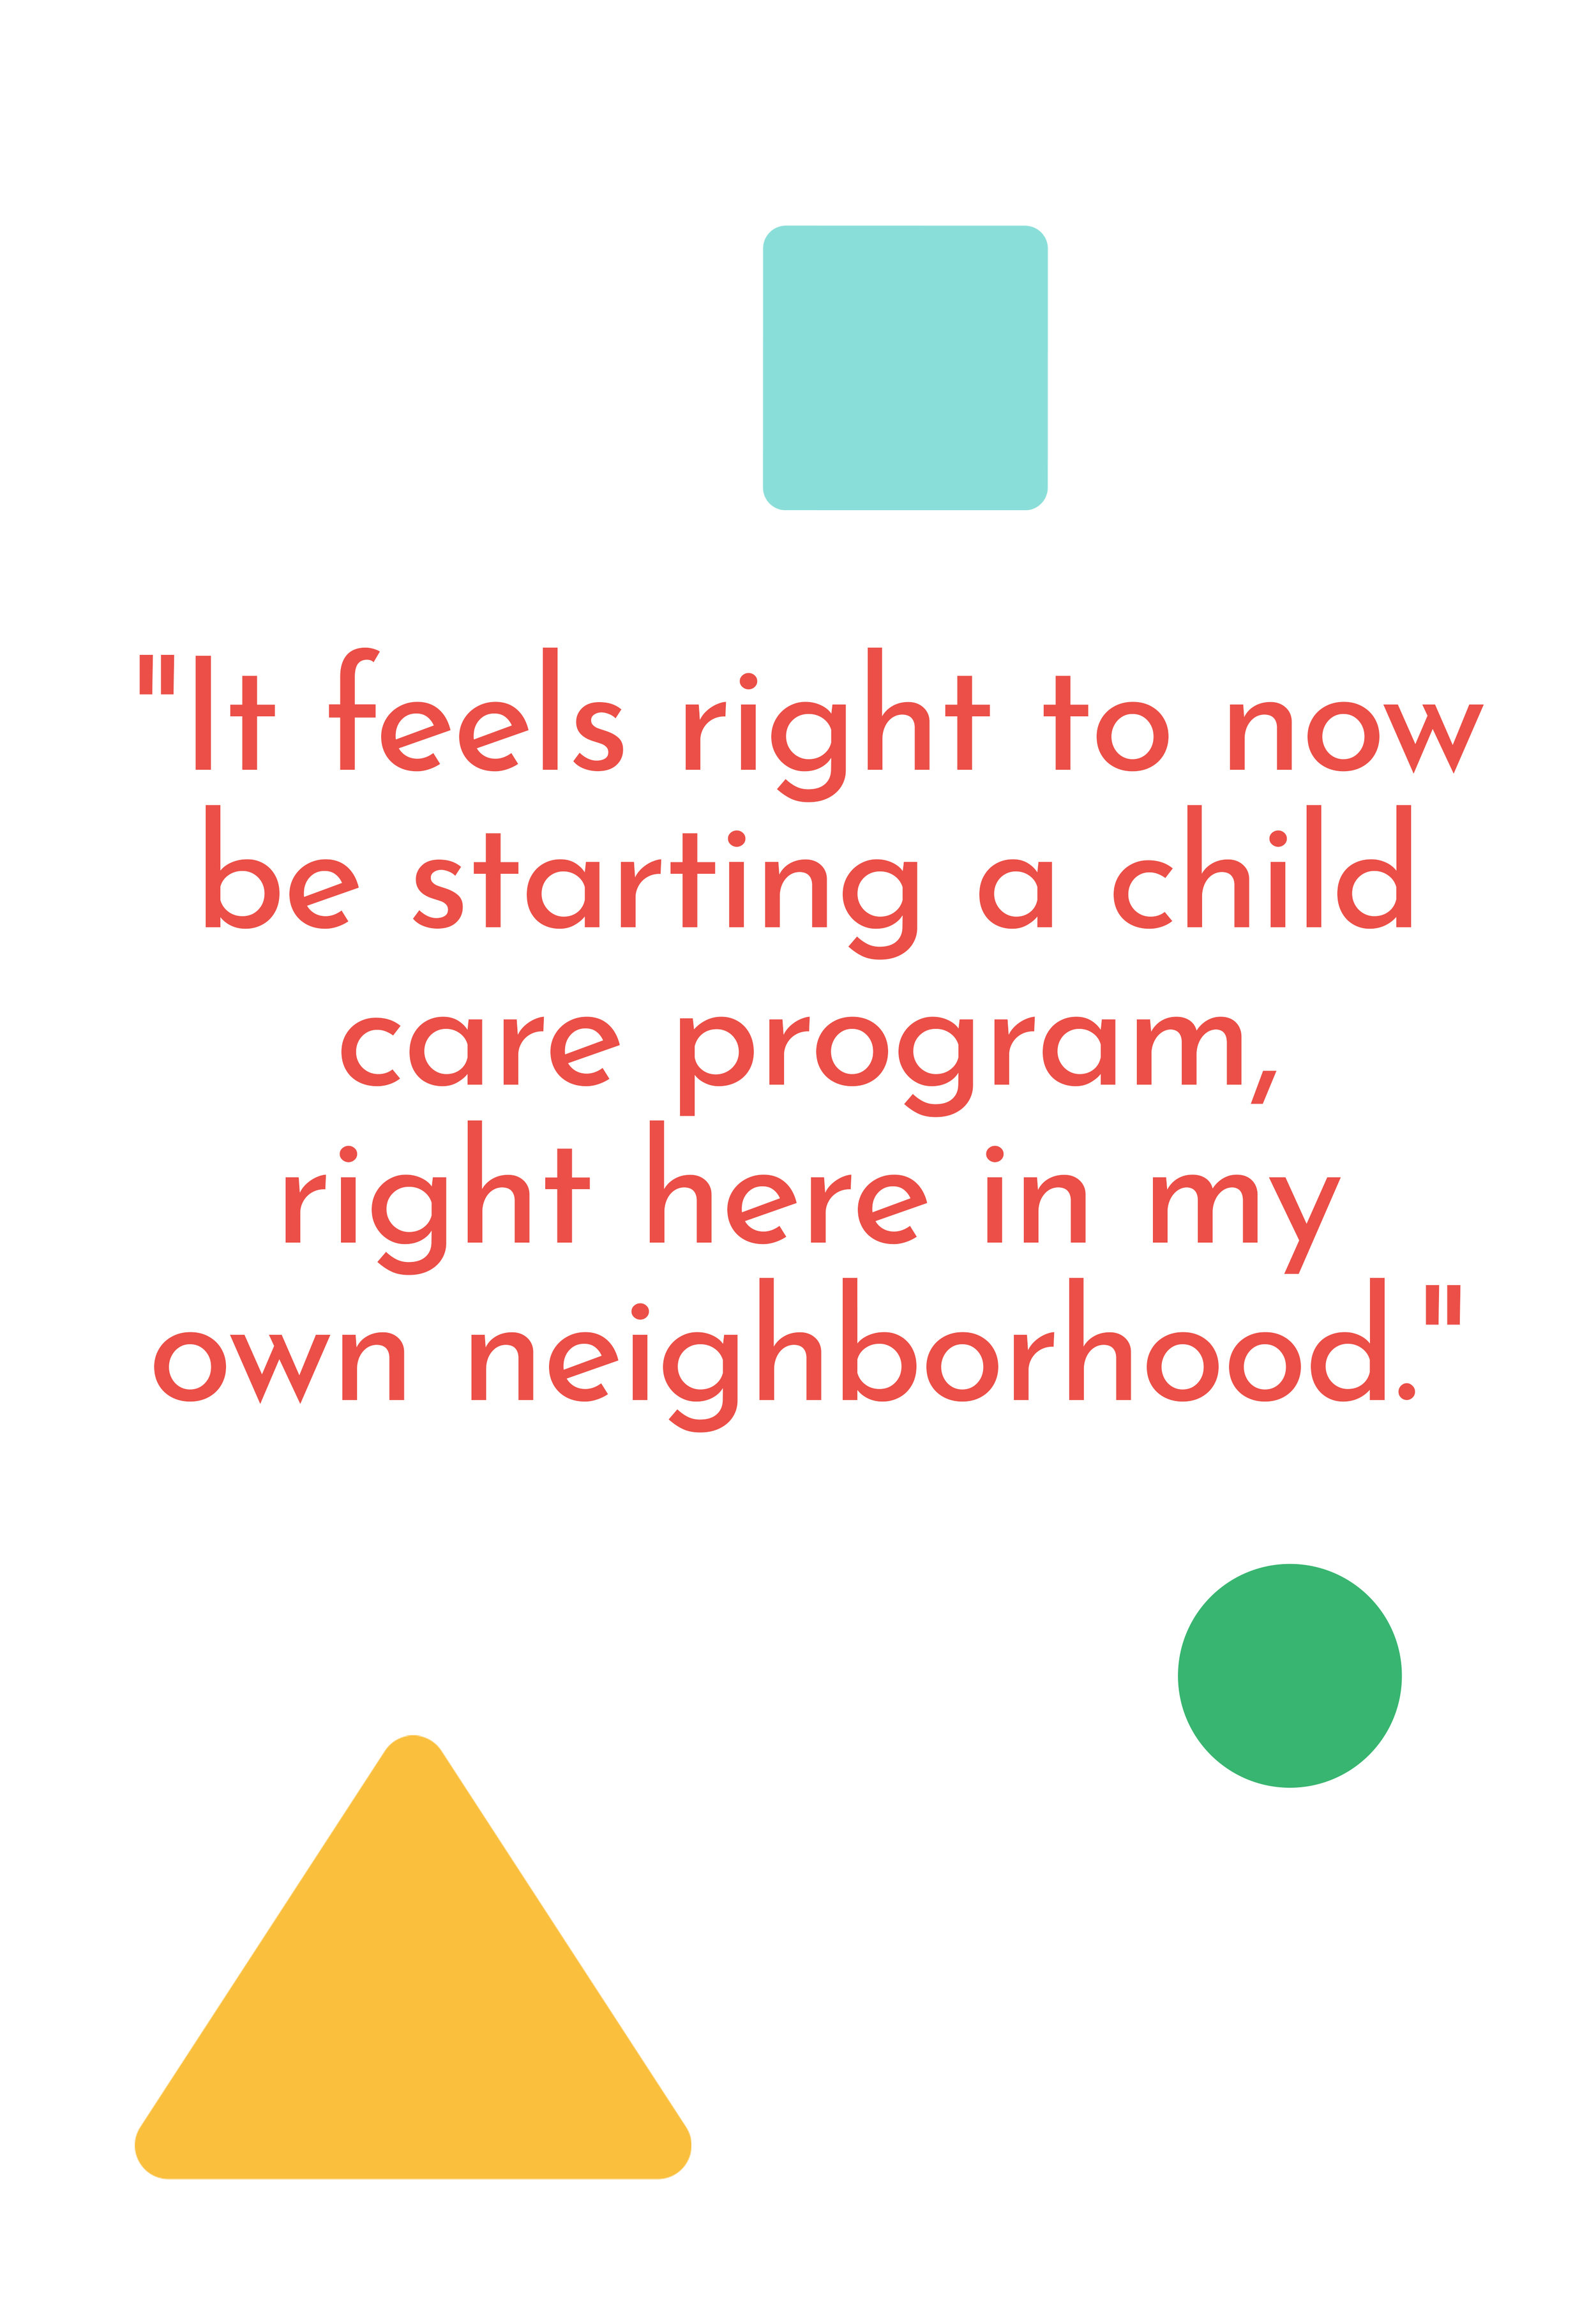 """""""It feels right to now be starting a child care program, right here in my own neighborhood."""" says Ms. Jennifer about opening a home daycare in Haverhill, MA."""